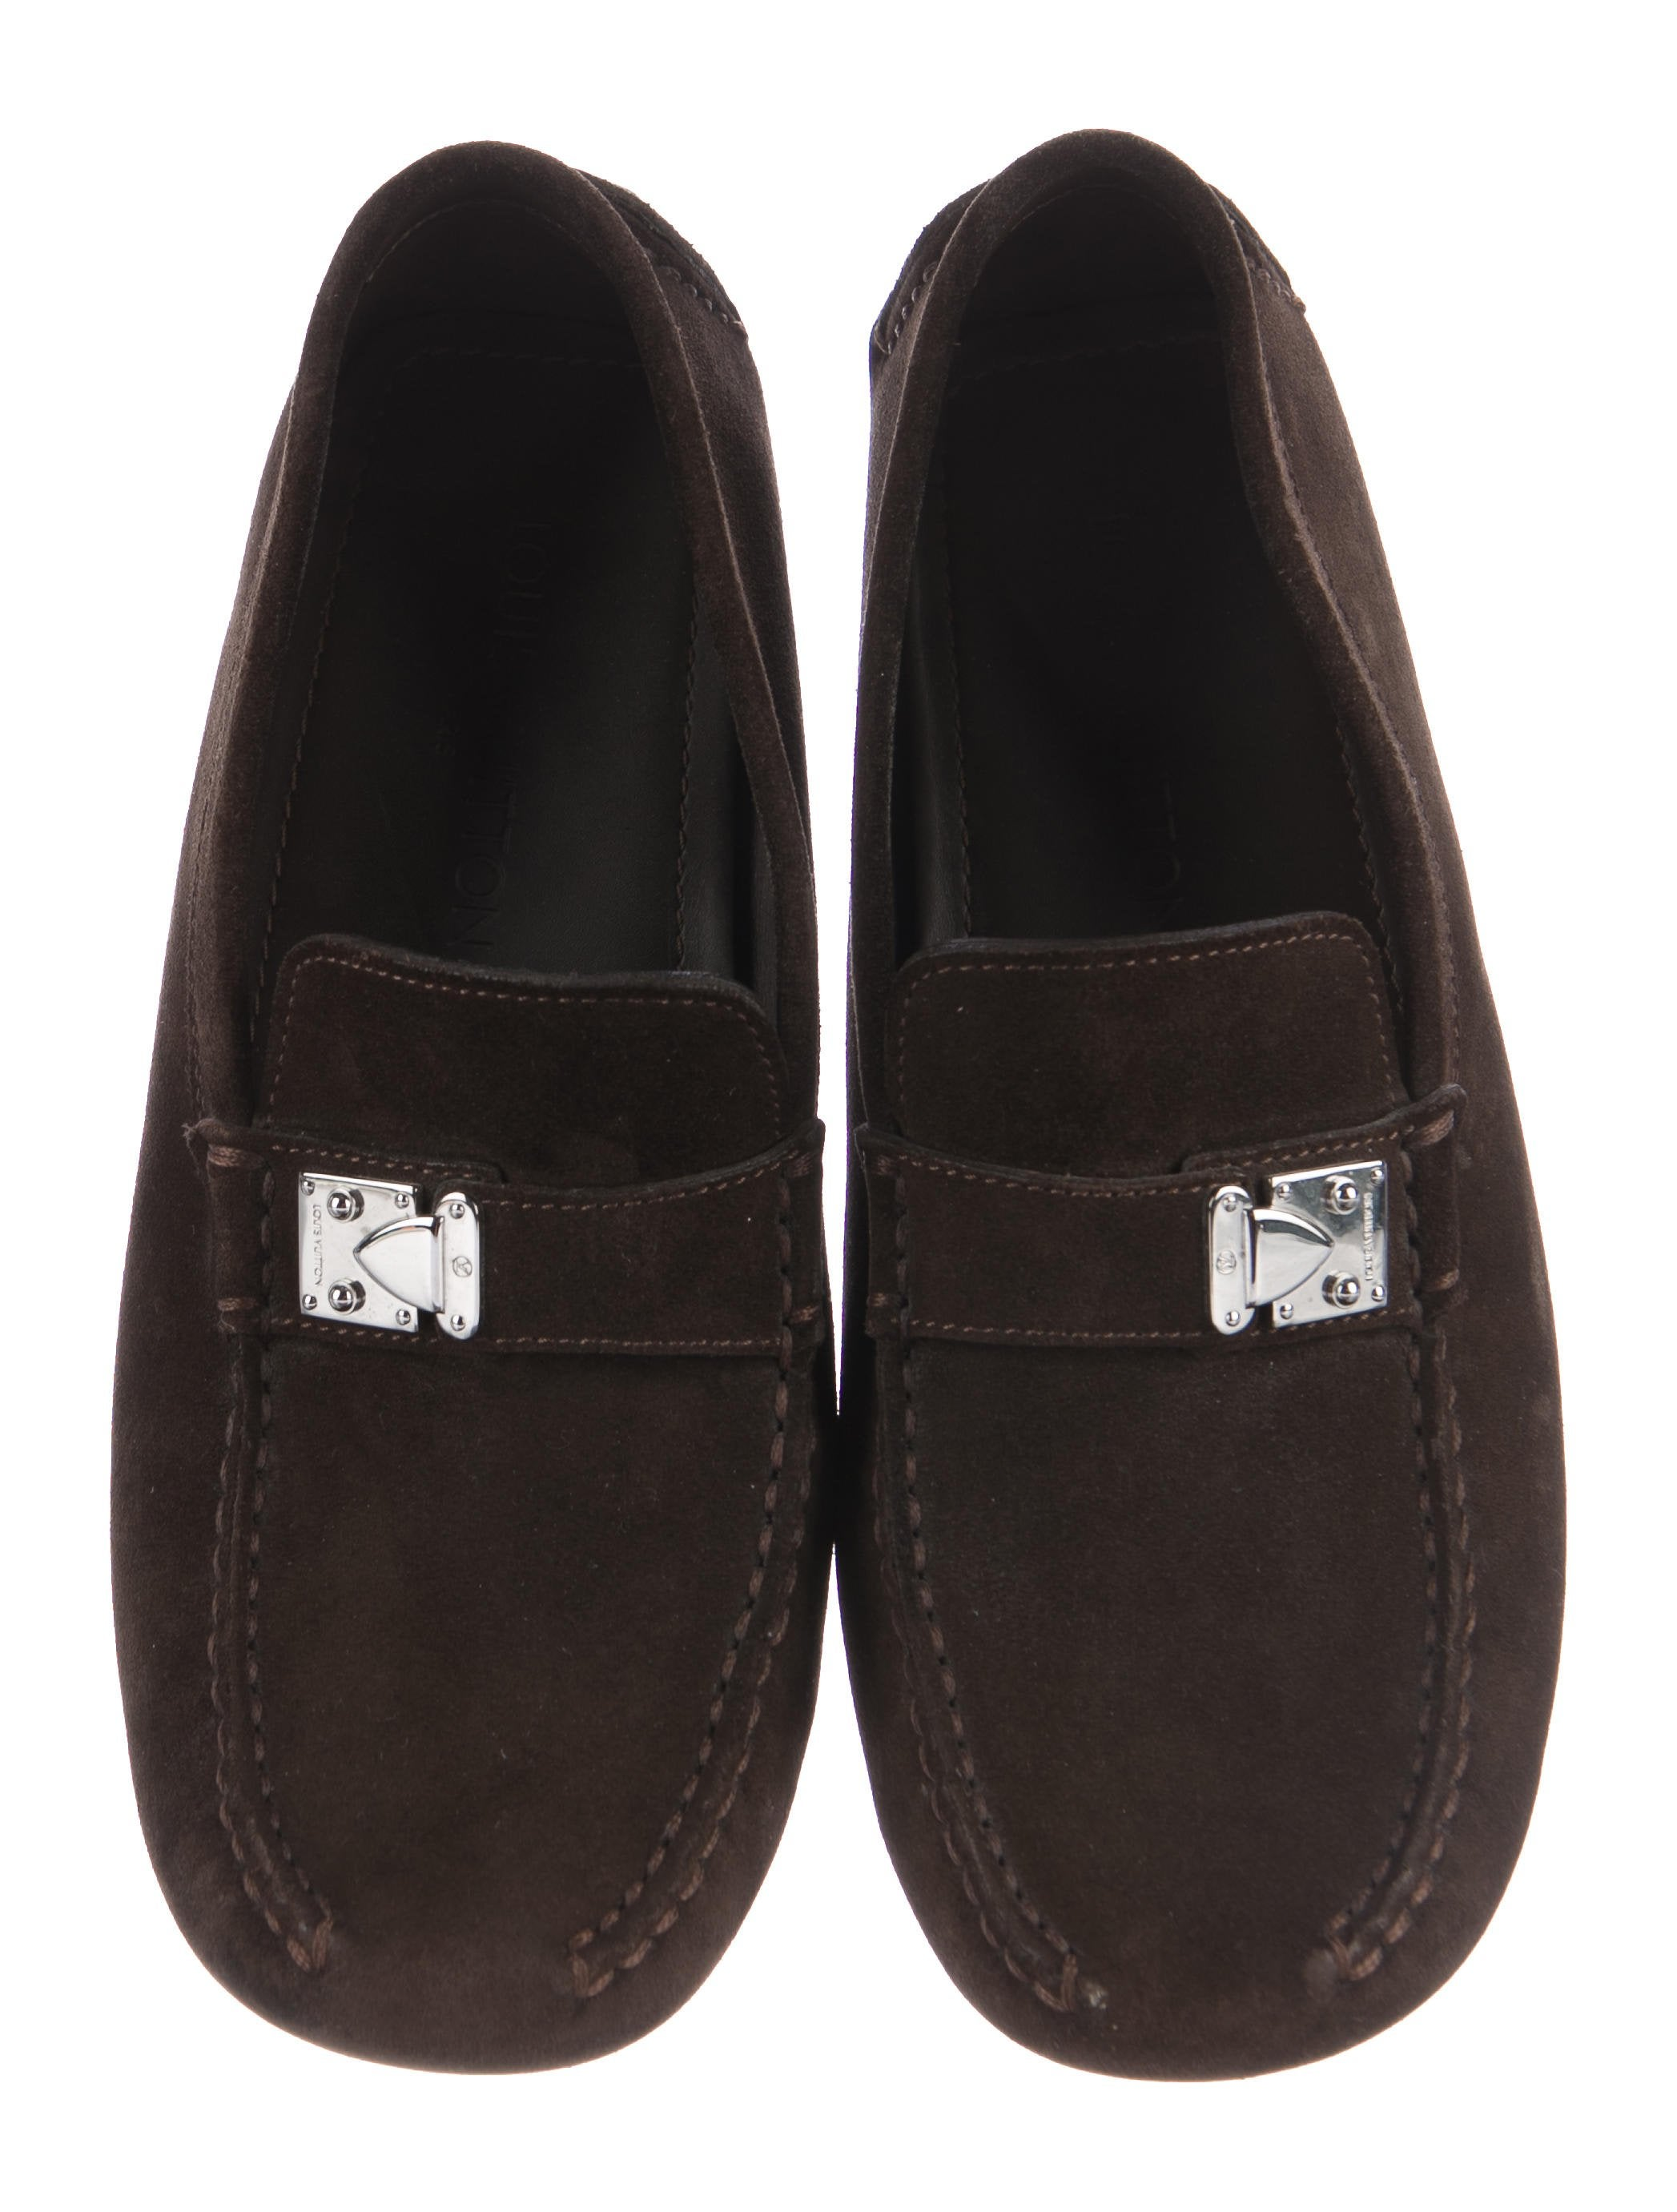 Mens Driving Penny Loafers Suede Moccasins Slip On Casual Dress Boat Shoes. from $ 16 89 Prime. out of 5 stars Jamron. Mens Stylish Buckle Driving Shoes Suede Loafer Flats $ 32 90 Prime. out of 5 stars Giorgio Brutini. Men's Slip-On .